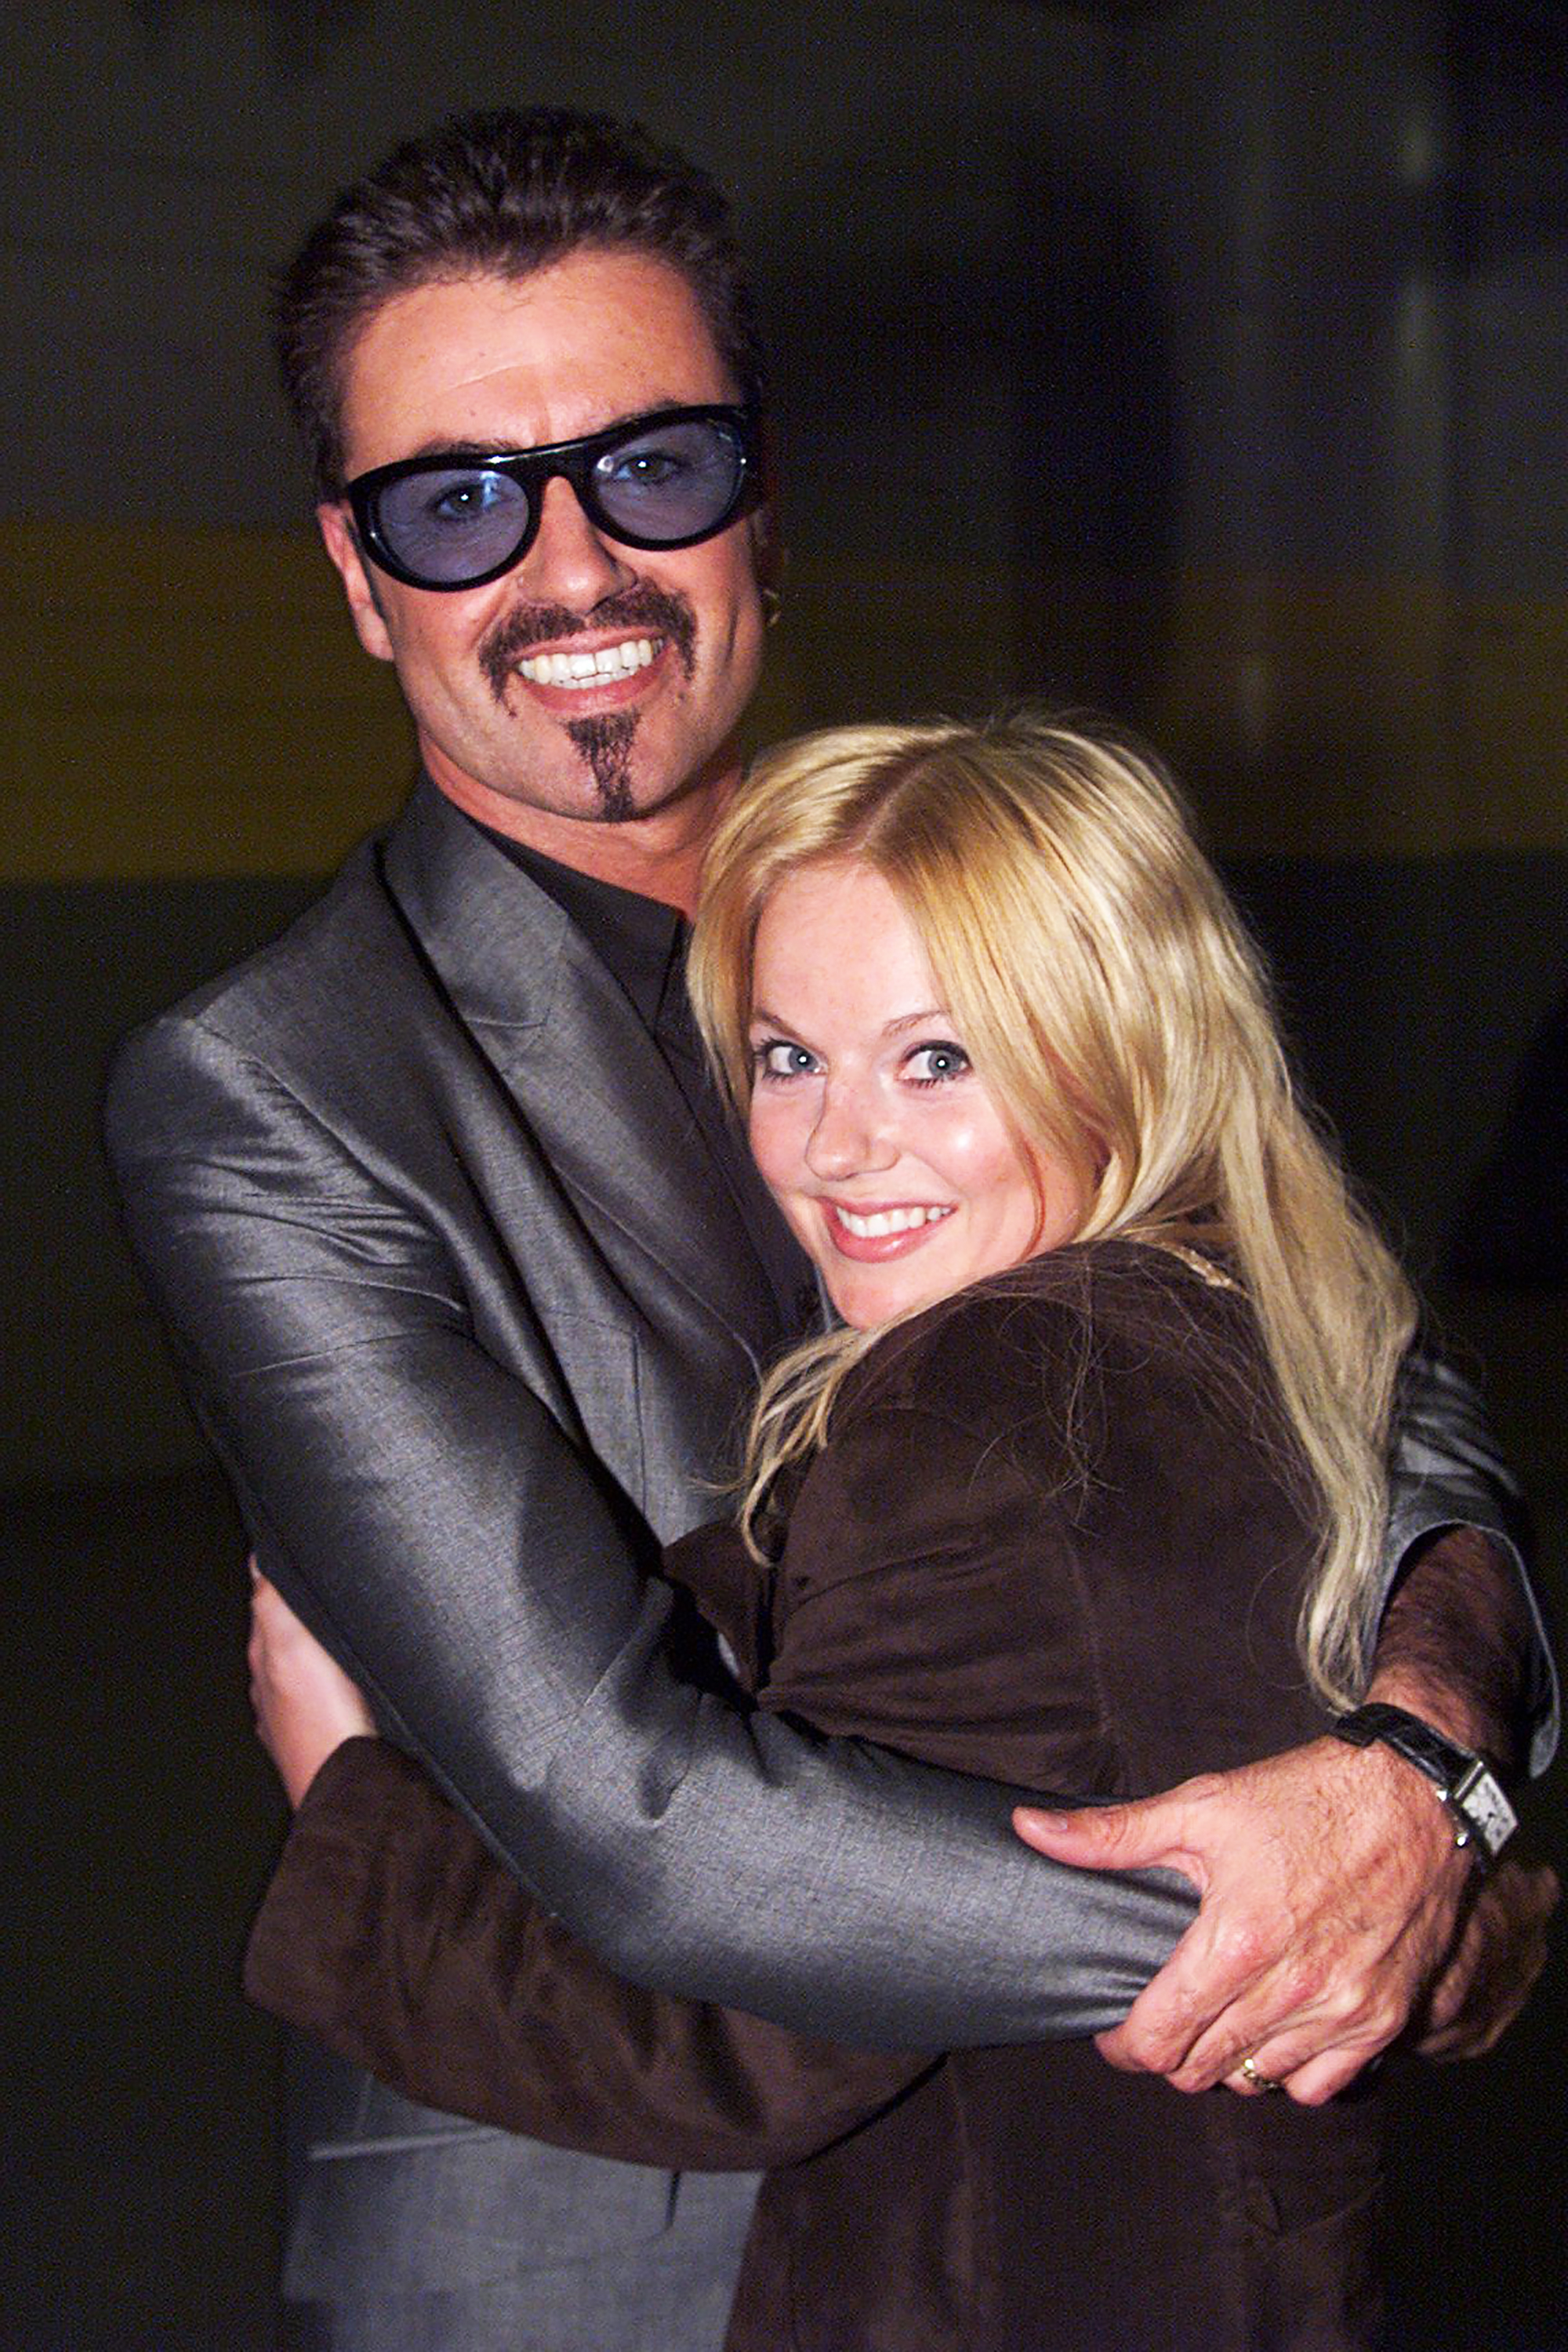 George Michael and Geri Halliwell during the Equality Rocks Concert at RFK Stadium in Washington, D.C., on April 29, 2000.